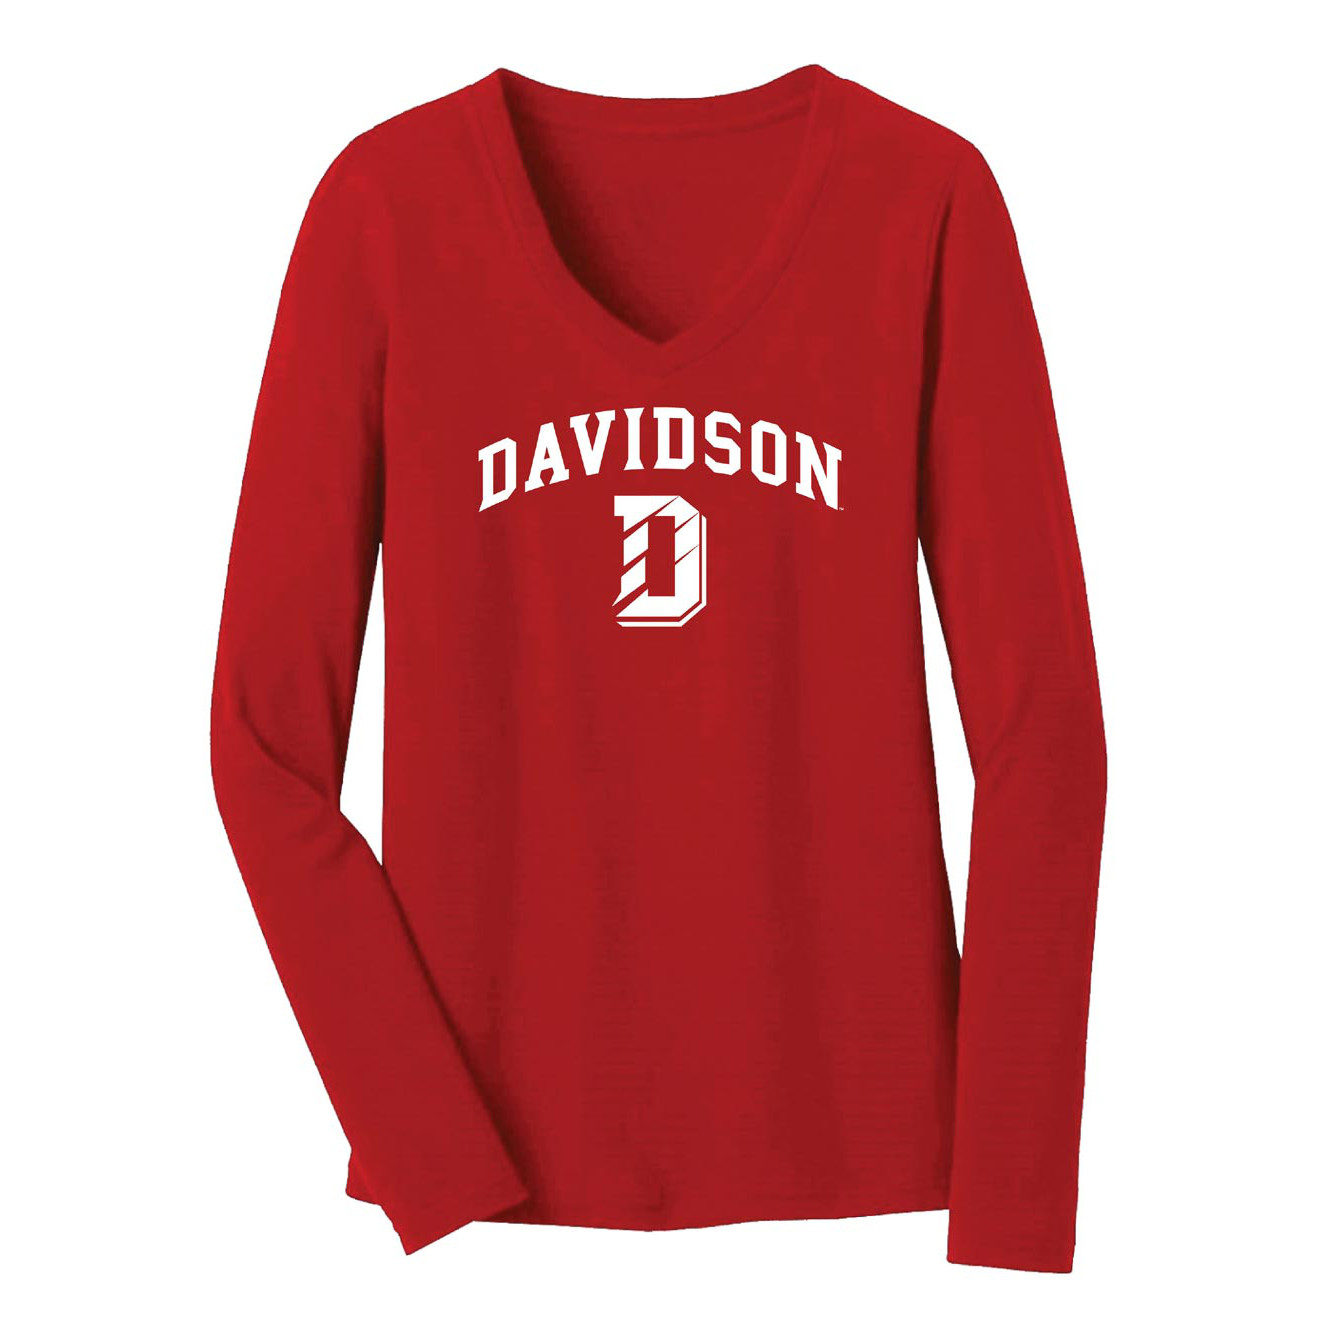 Image For Youth Girls Long Sleeve Tee -Red- D Over Davidson